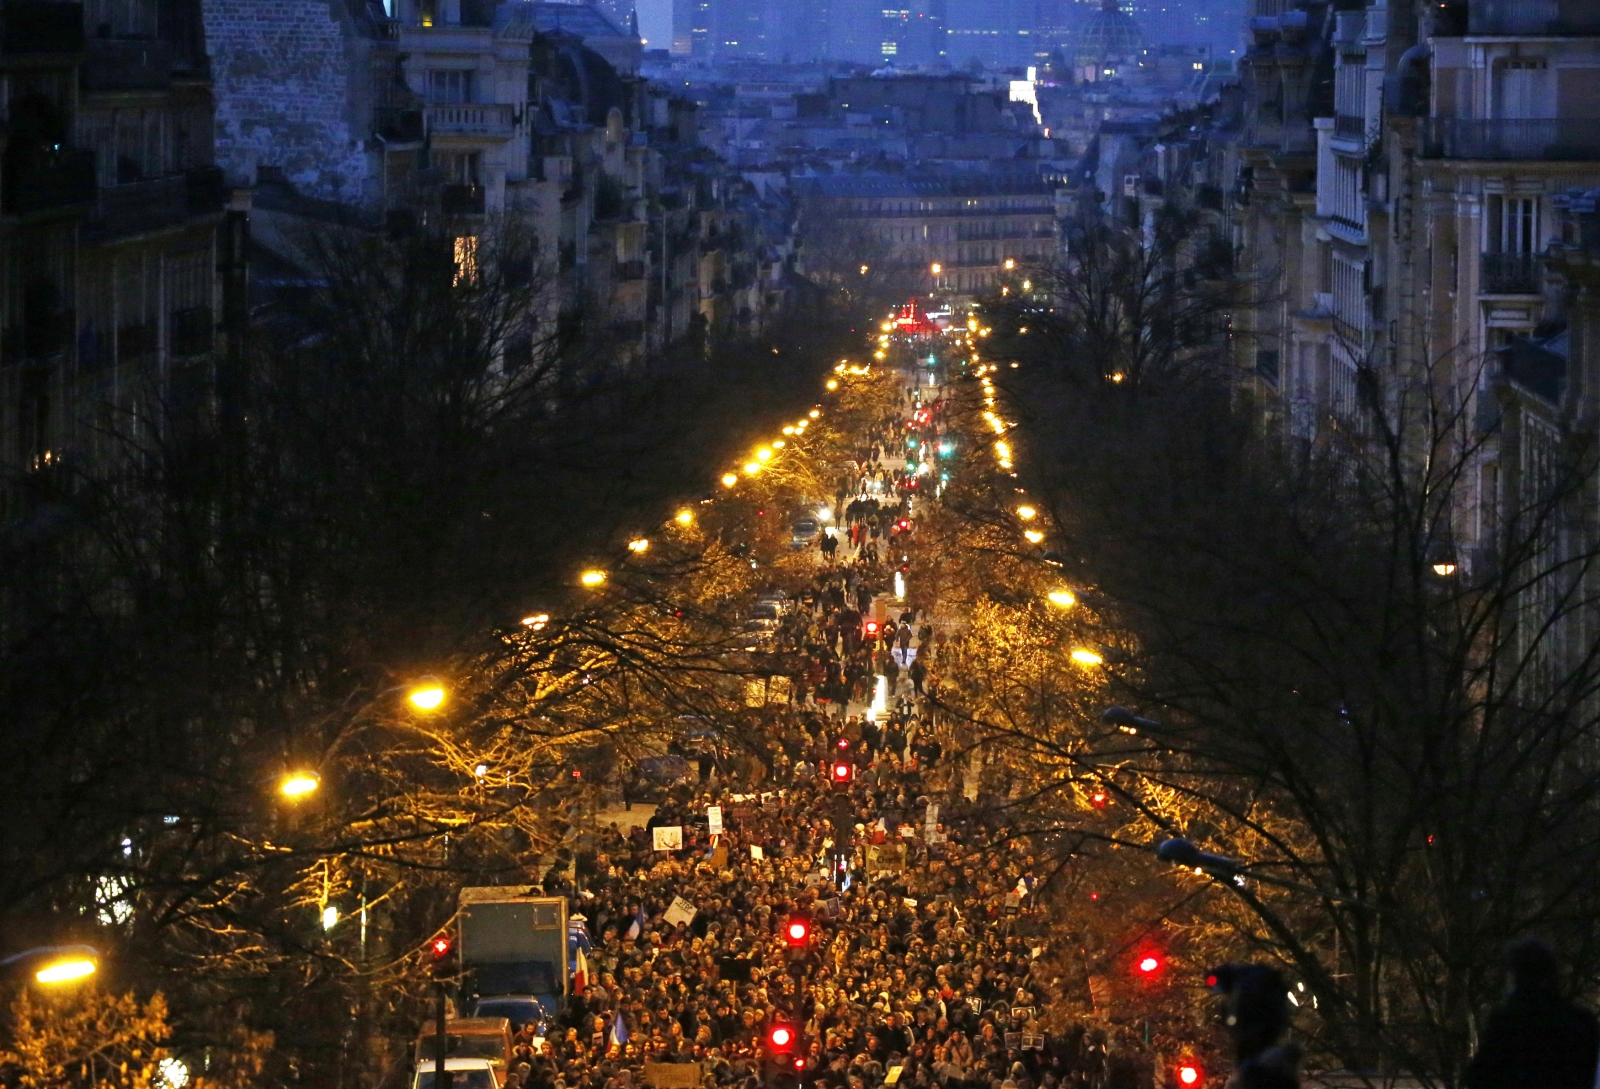 France unity rally in Paris